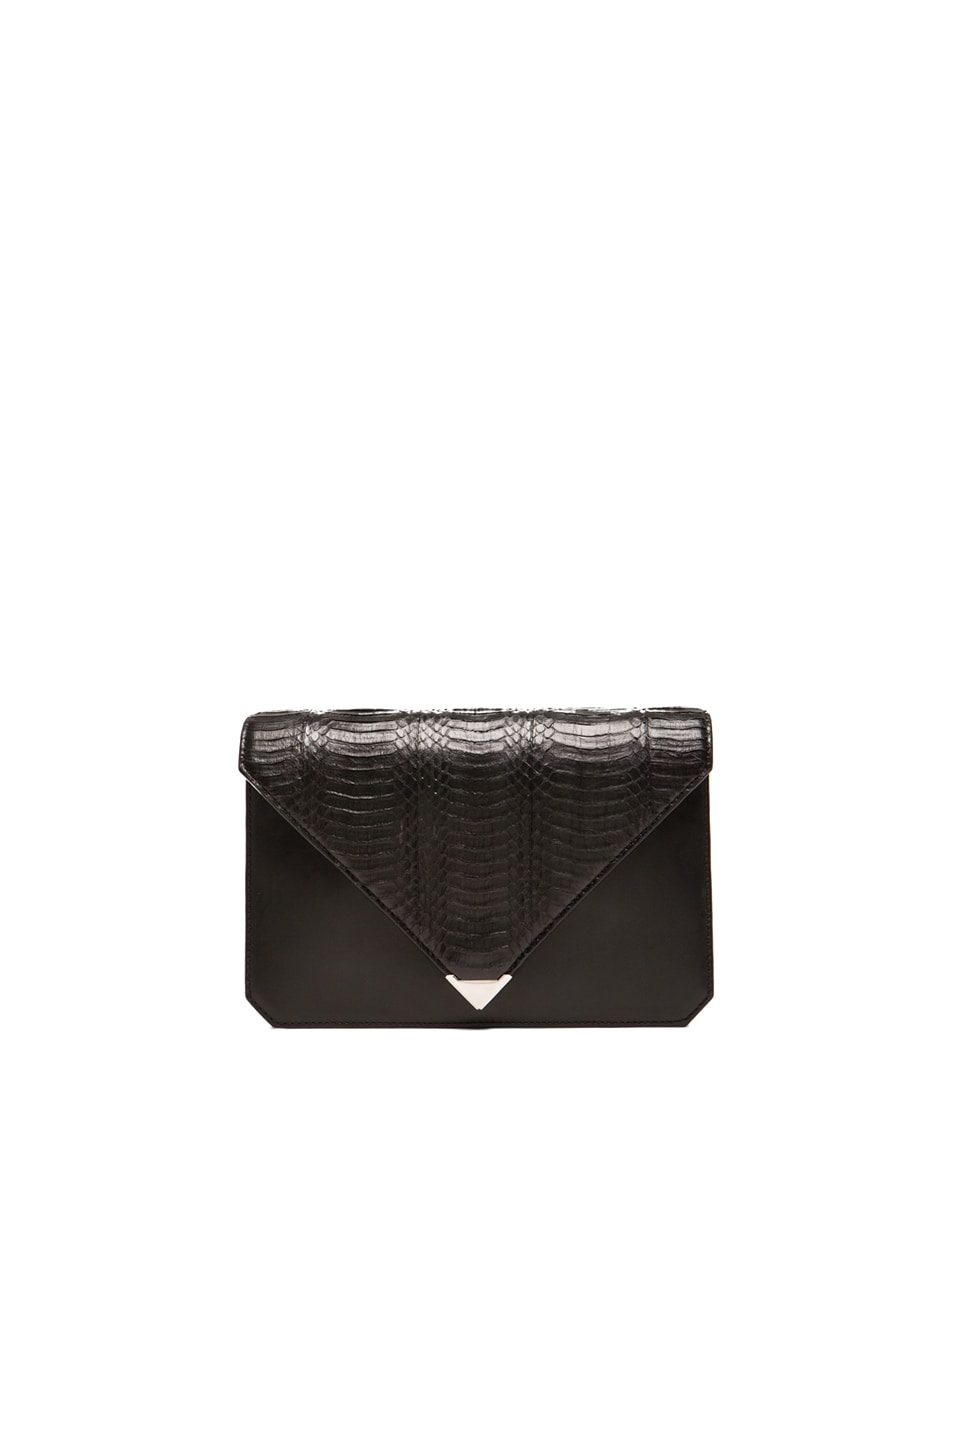 Image 1 of Alexander Wang Prisma Envelope Clutch in Black